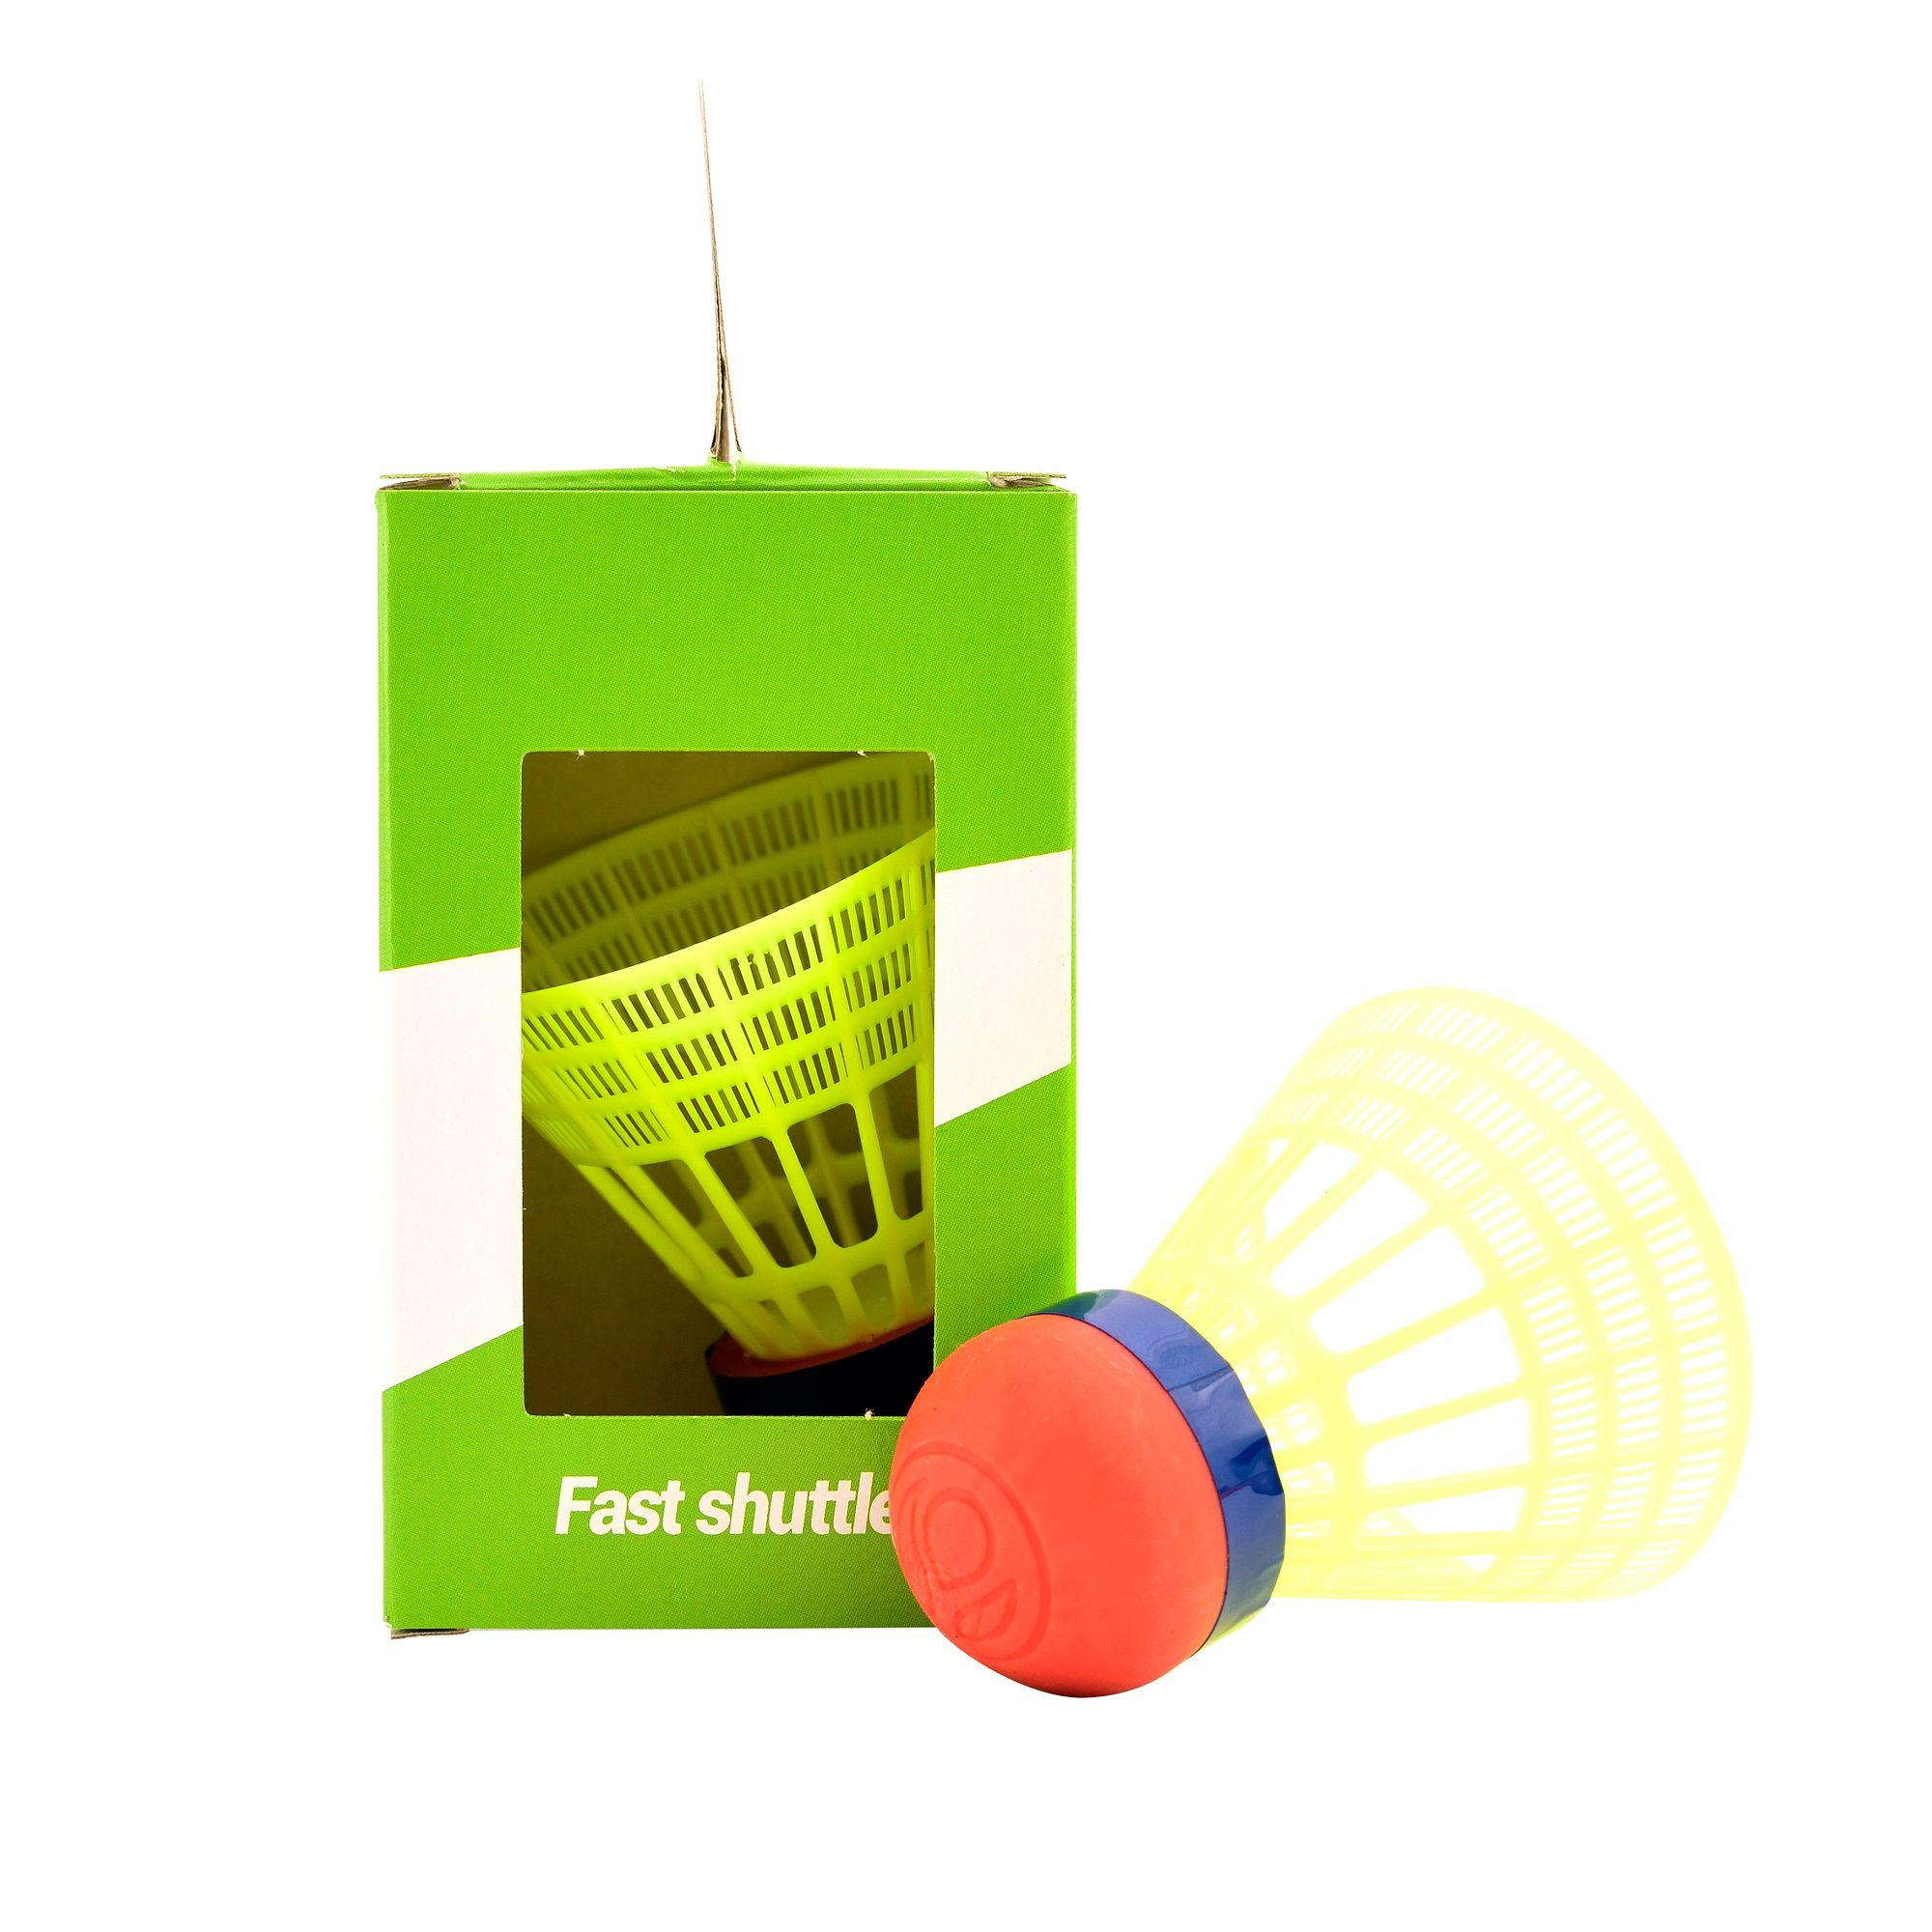 Artengo Speed badminton Shuttle Fast 100